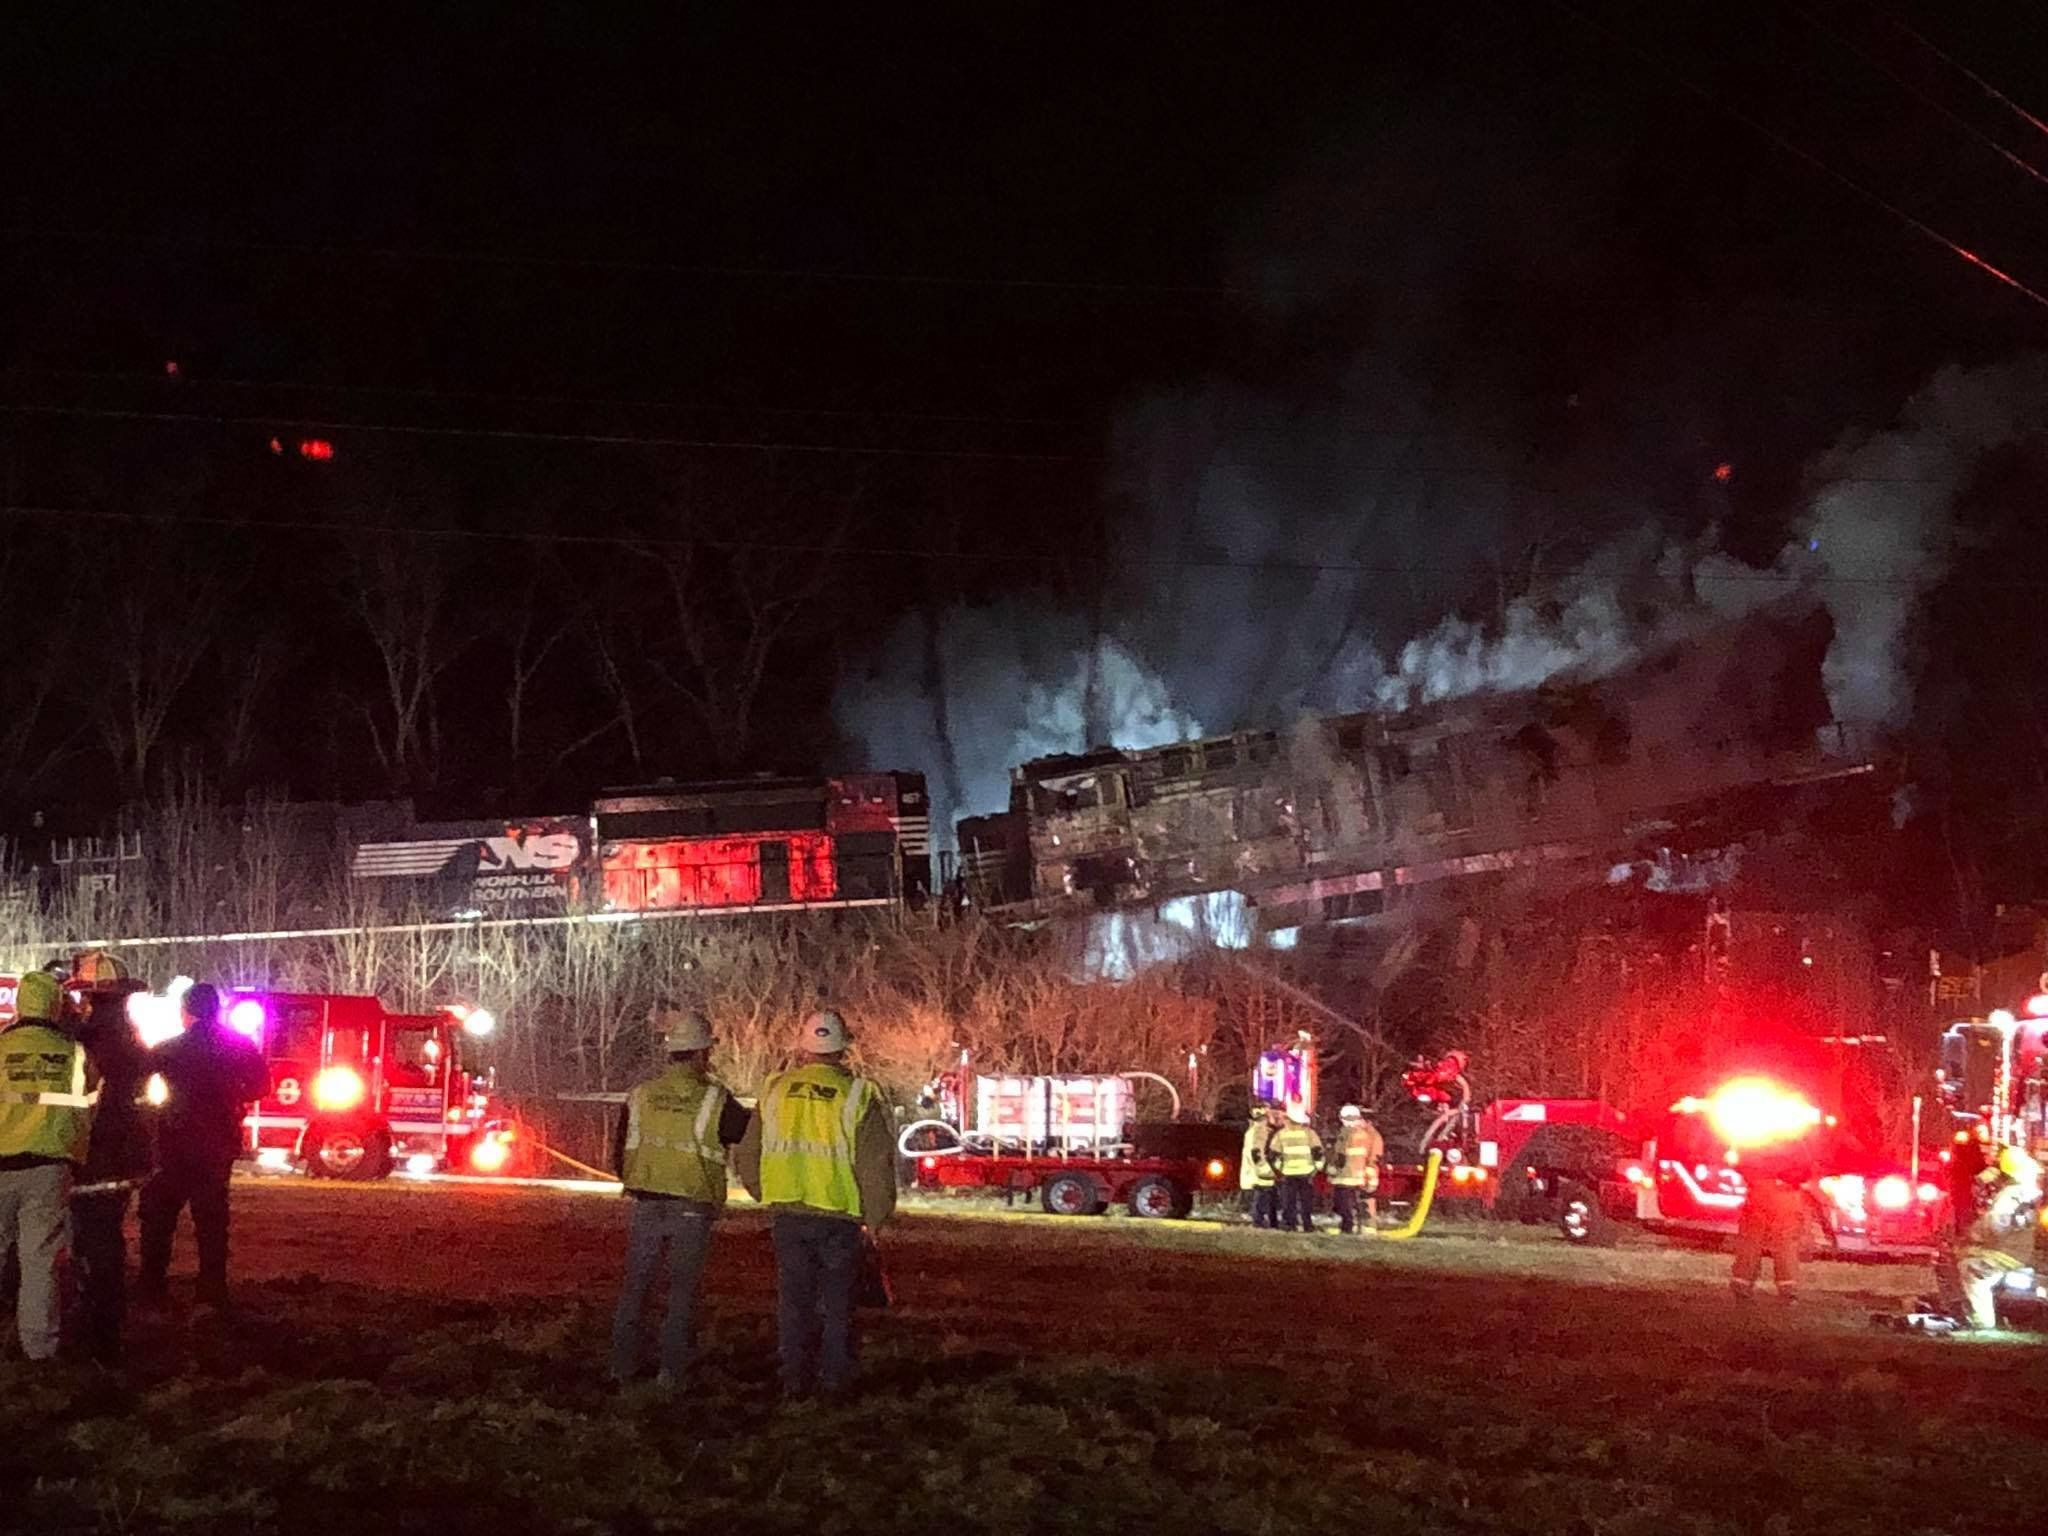 A freight train collision in Georgetown Kentucky late Sunday night left four people injured